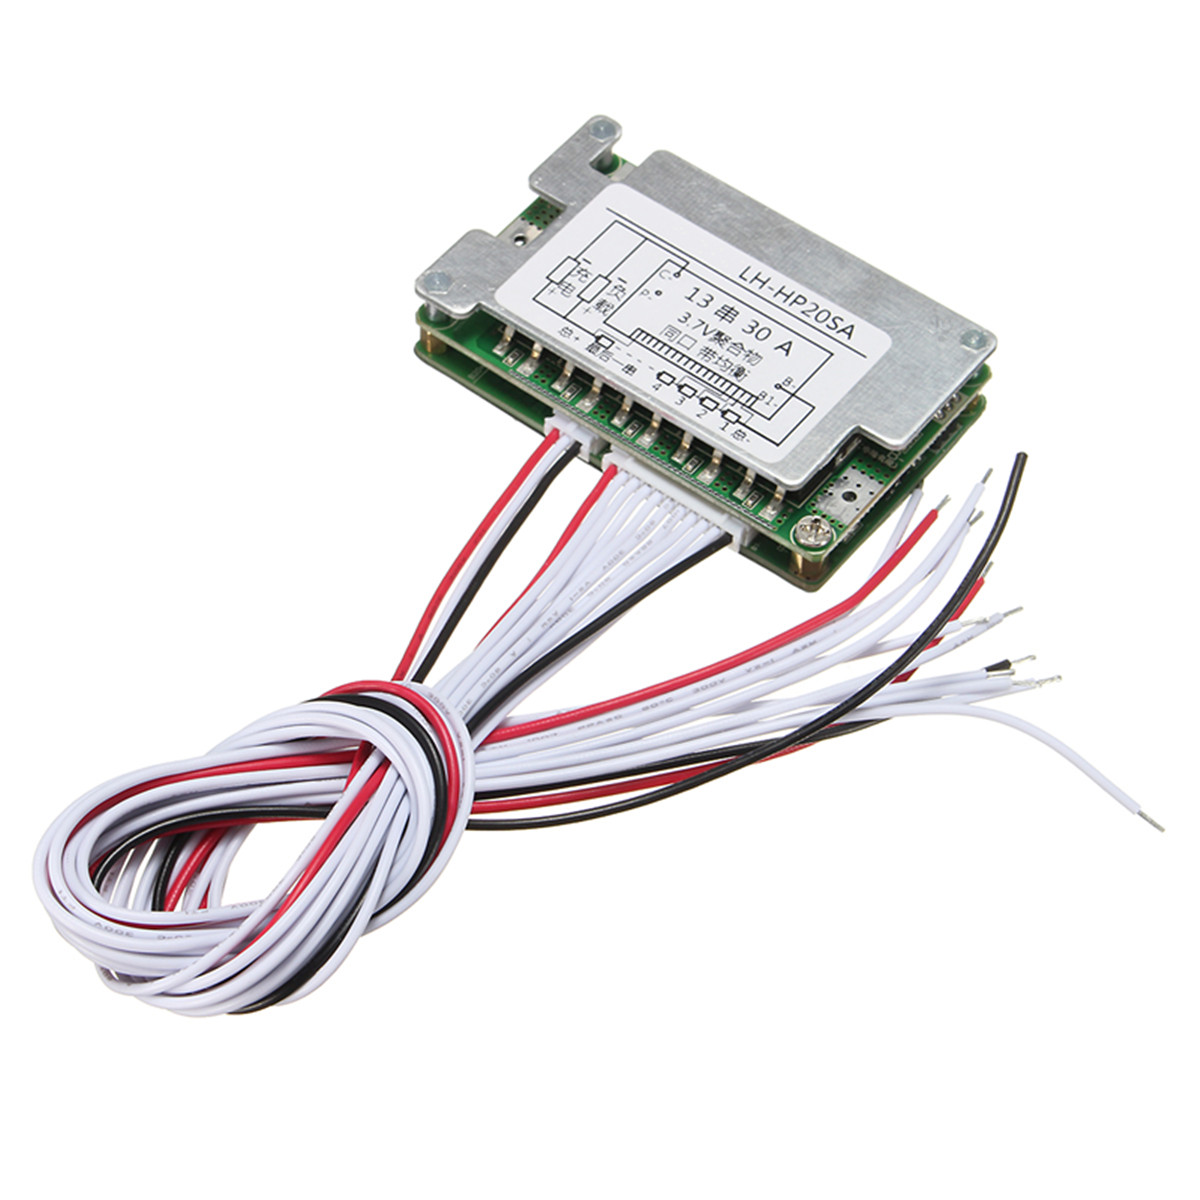 48v Bms 13s Li Ion Battery 30a Lithium Protection Electronic Wiring Board Balance Wire Module 70x45x15mm Integrated Circuits